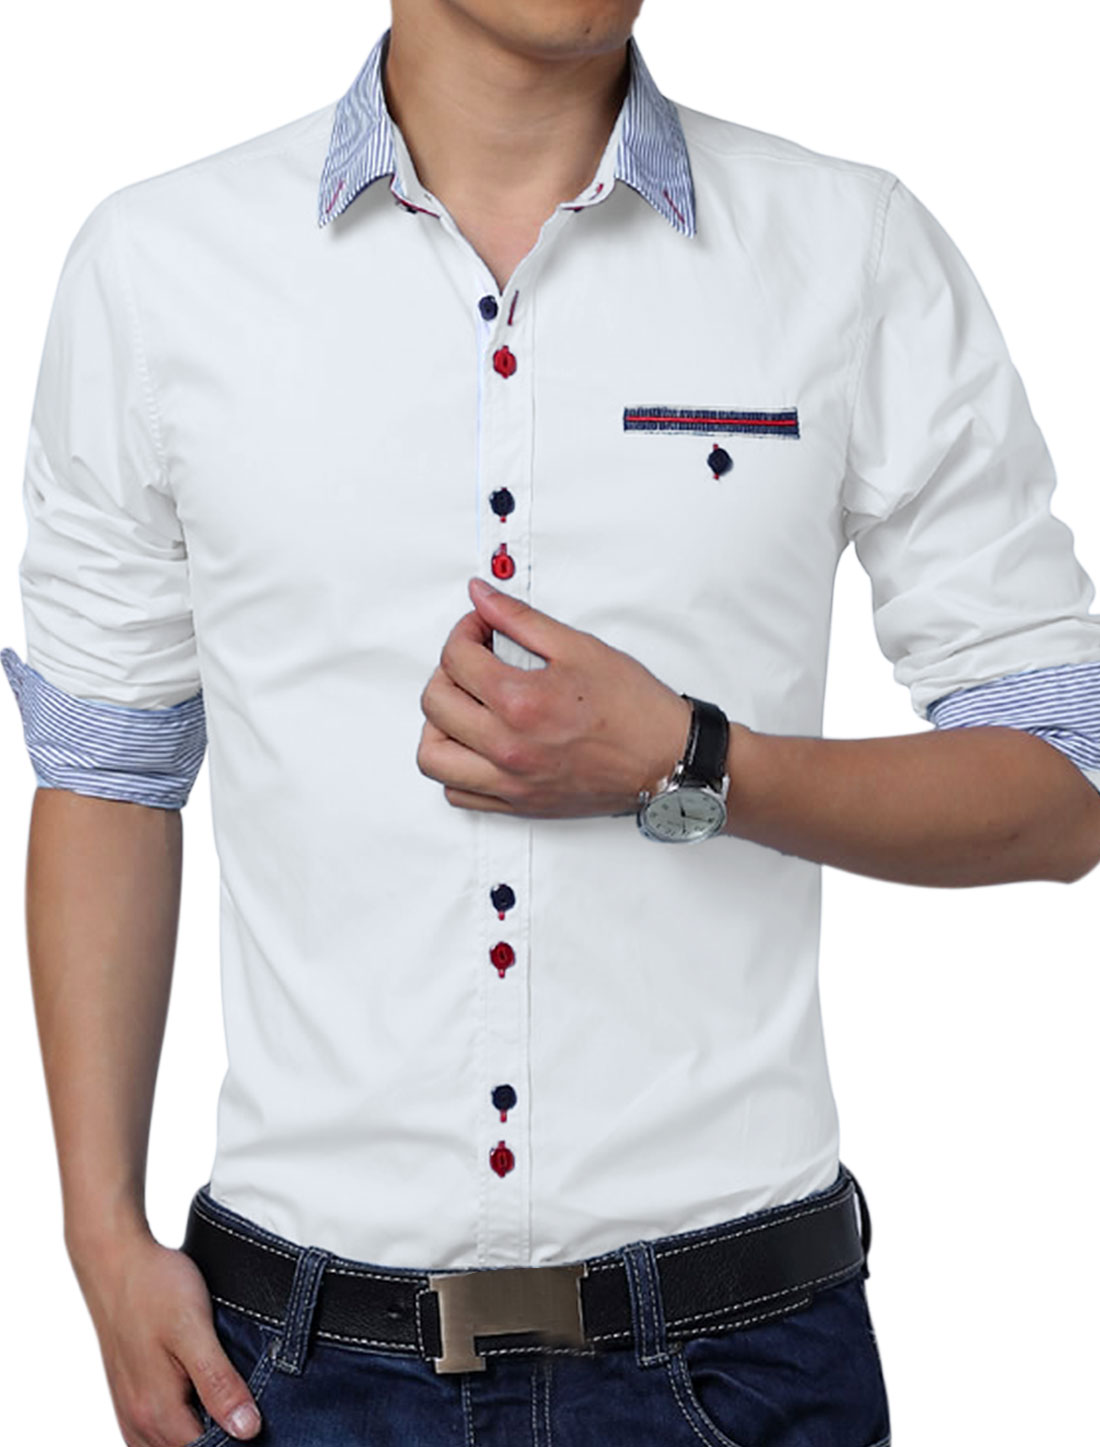 Men Buttons Closed Panel Design NEW Trendy Top Shirt White L